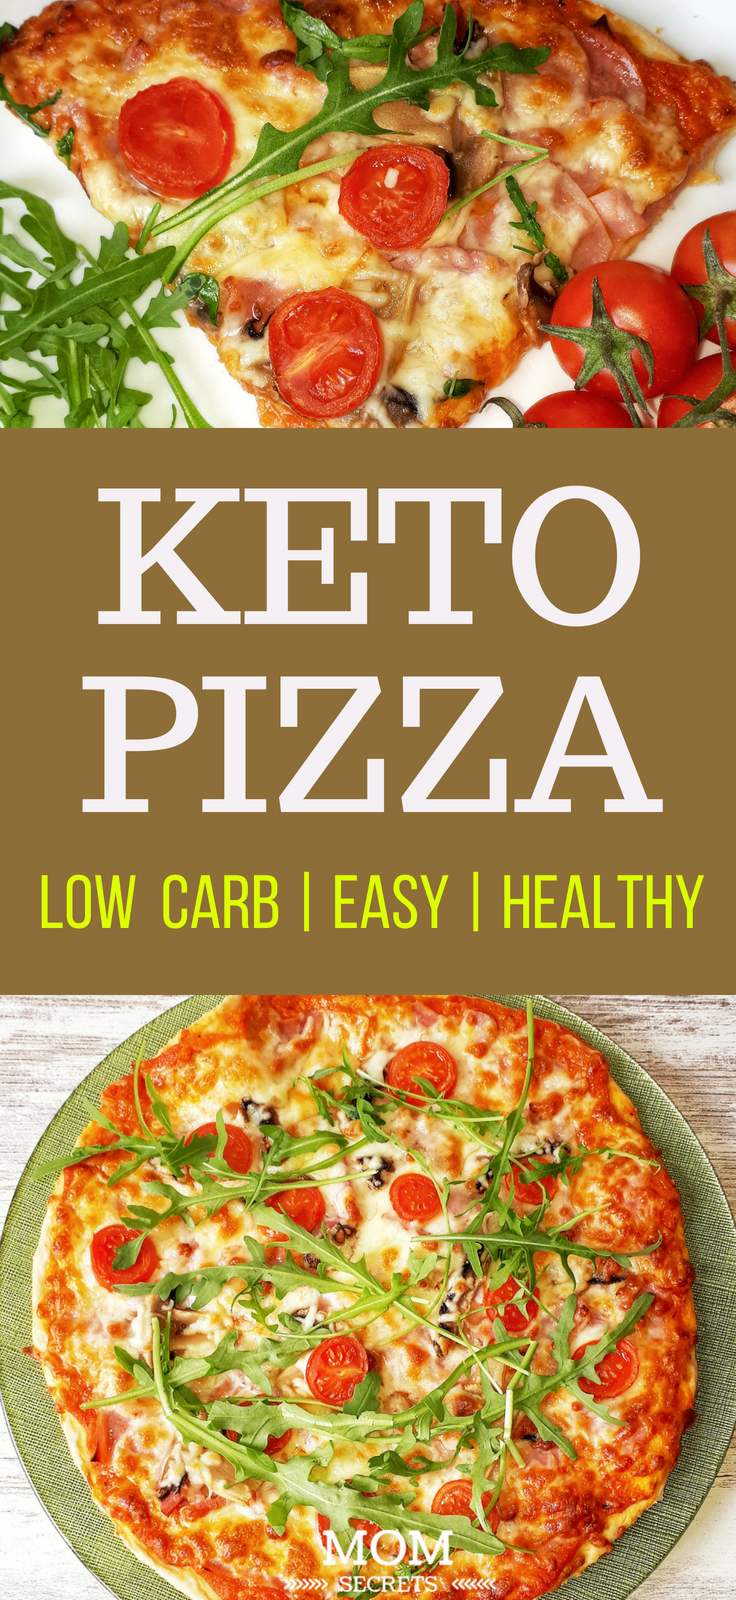 This low carb pizza dough it's keto-friendly, gluten-free, grain-free, and quickly becomes the holy grail of low-carb crusts. It tastes amazing and is so simple to make!